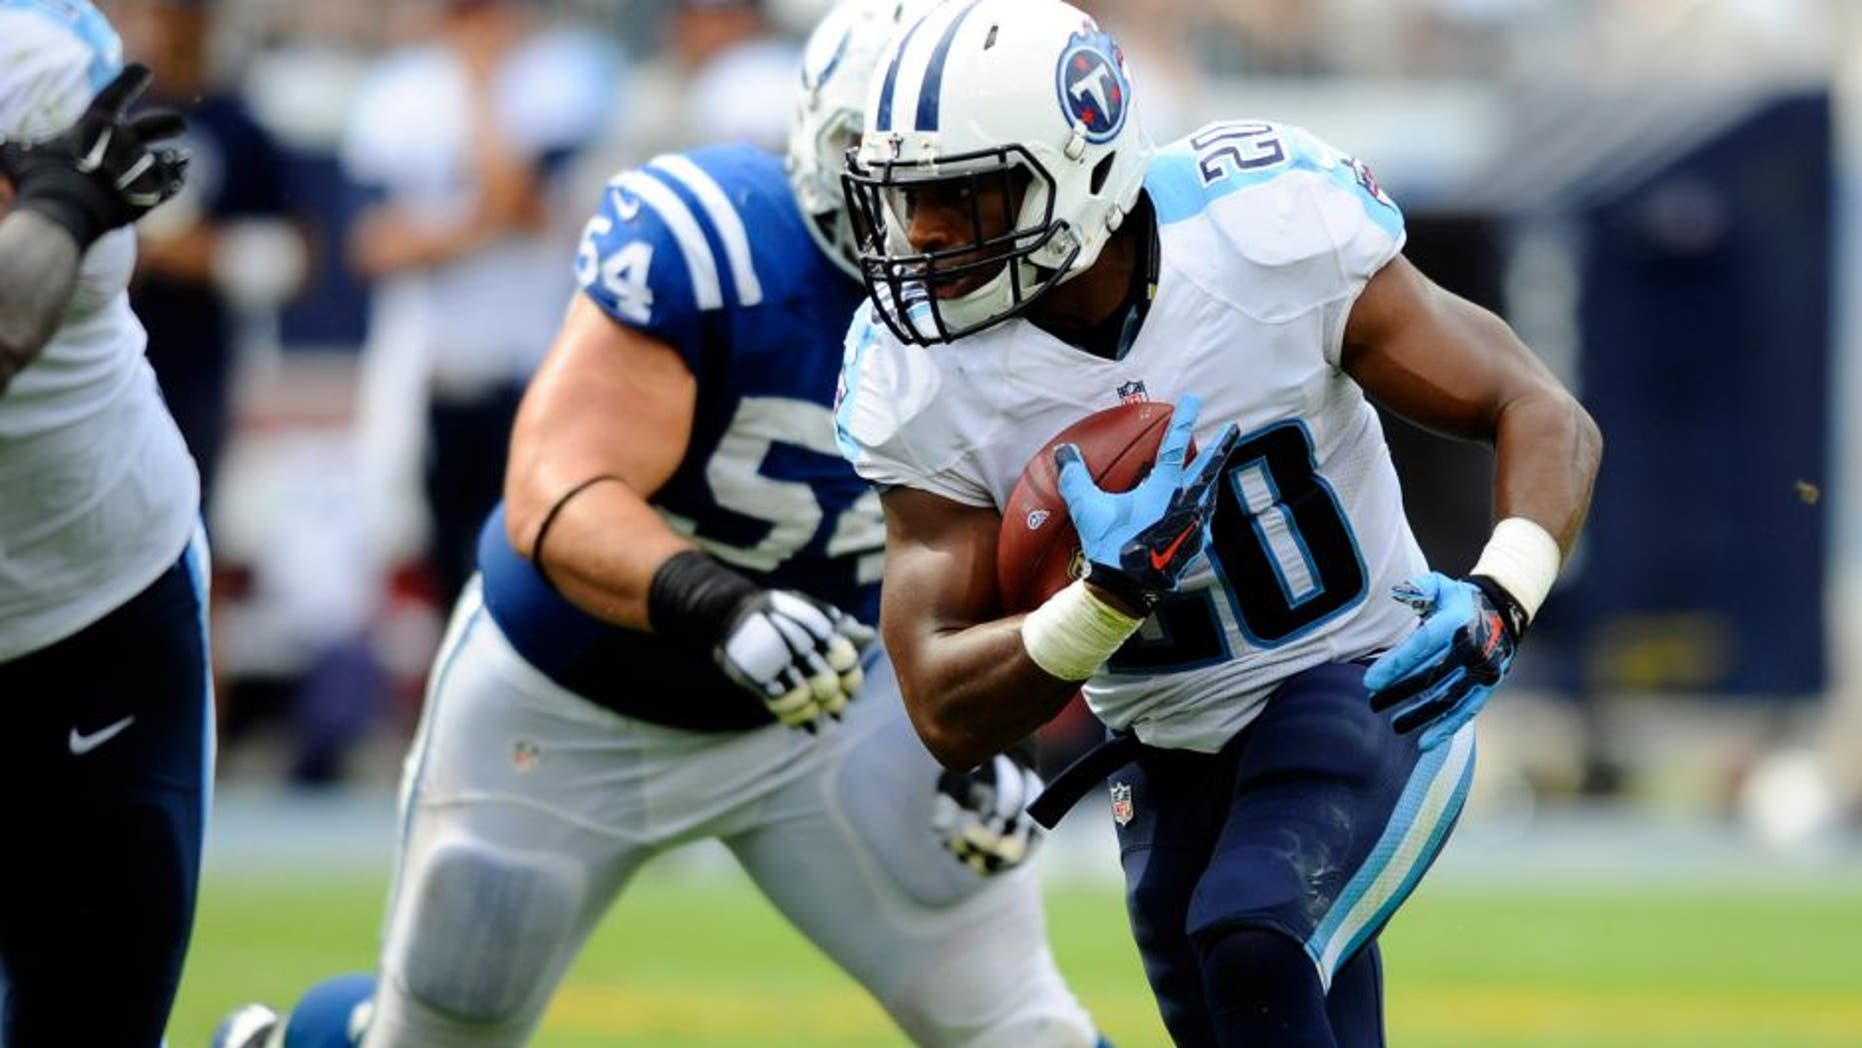 Sep 27, 2015; Nashville, TN, USA; Tennessee Titans running back Bishop Sankey (20) runs for a short gain during the second half against the Indianapolis Colts at Nissan Stadium. The Colts won 35-33. Mandatory Credit: Christopher Hanewinckel-USA TODAY Sports